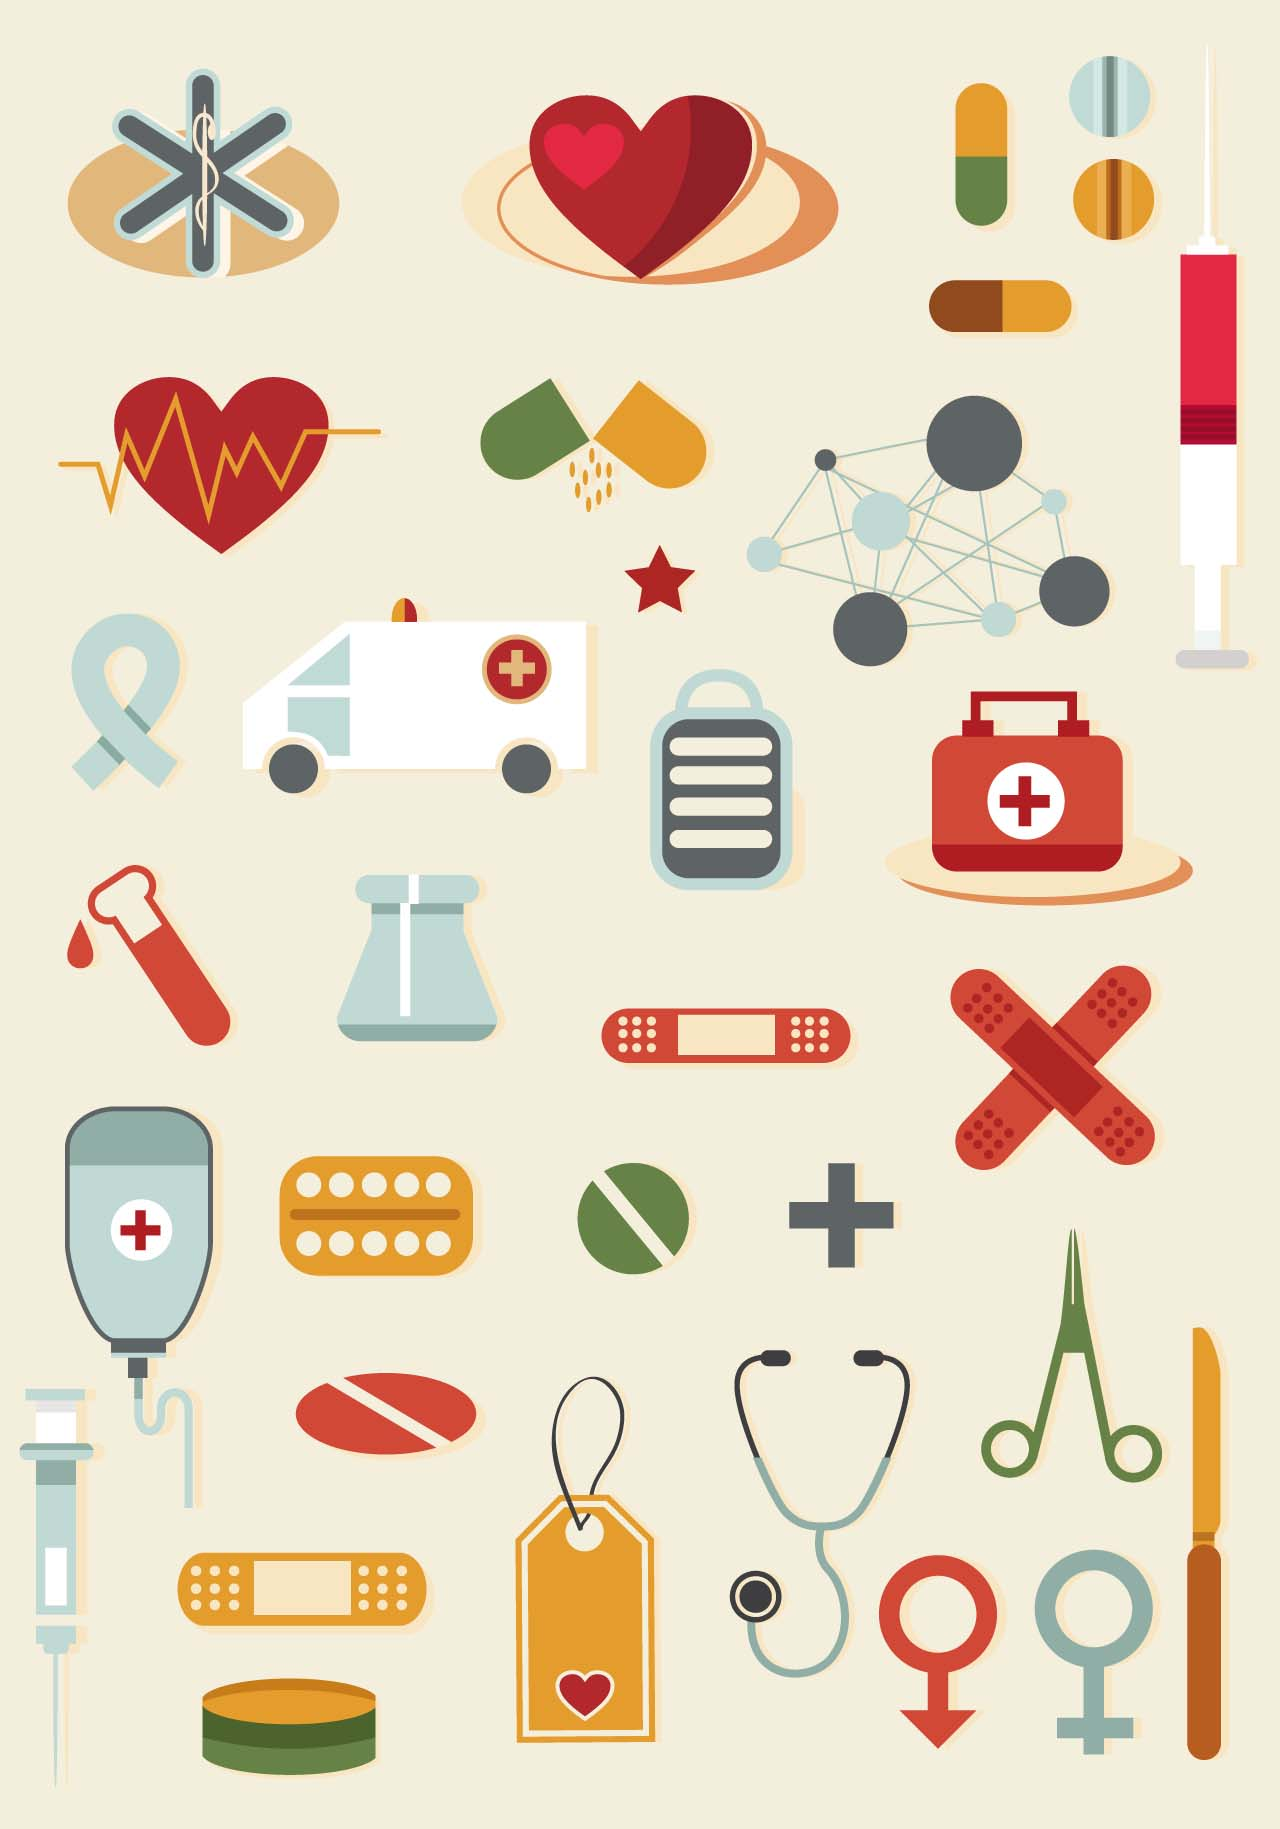 Medicine clipart doctor tool.